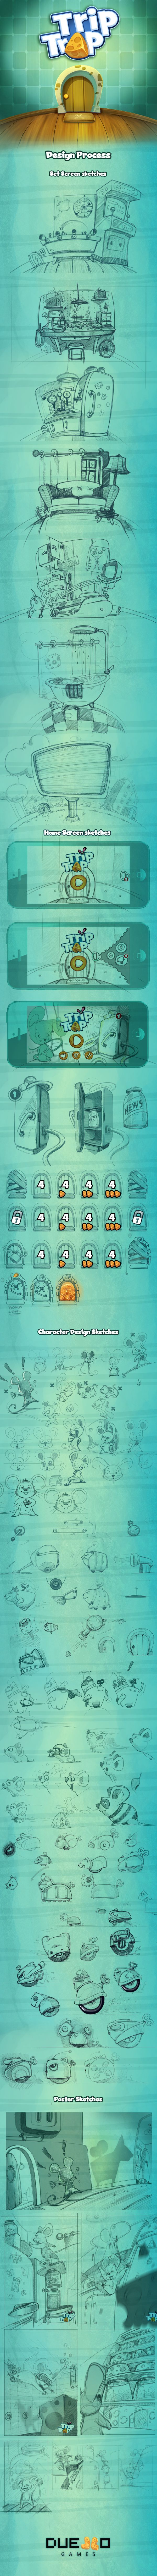 best game images on pinterest game design game gui and game